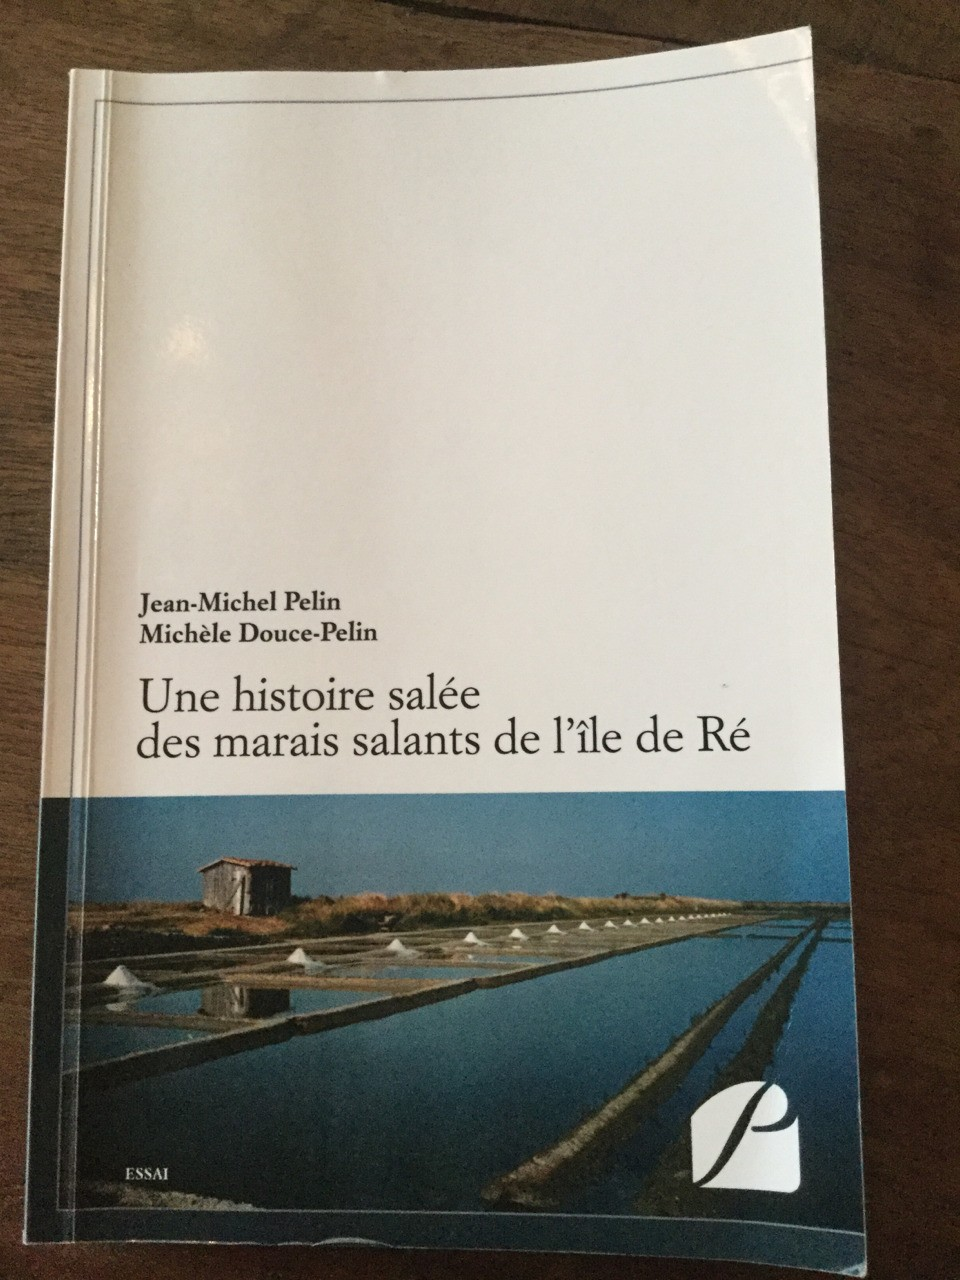 "A ""history"" of the exploitation of the salt marshes of the Île de Ré, almost entirely uncontaminated by objectivity, yet redeemed as a read by its relentlessly acrimonious tone and its leitmotivistic vilification of the Mayor of Loix, who may or may not deserve it. I suspect the latter."